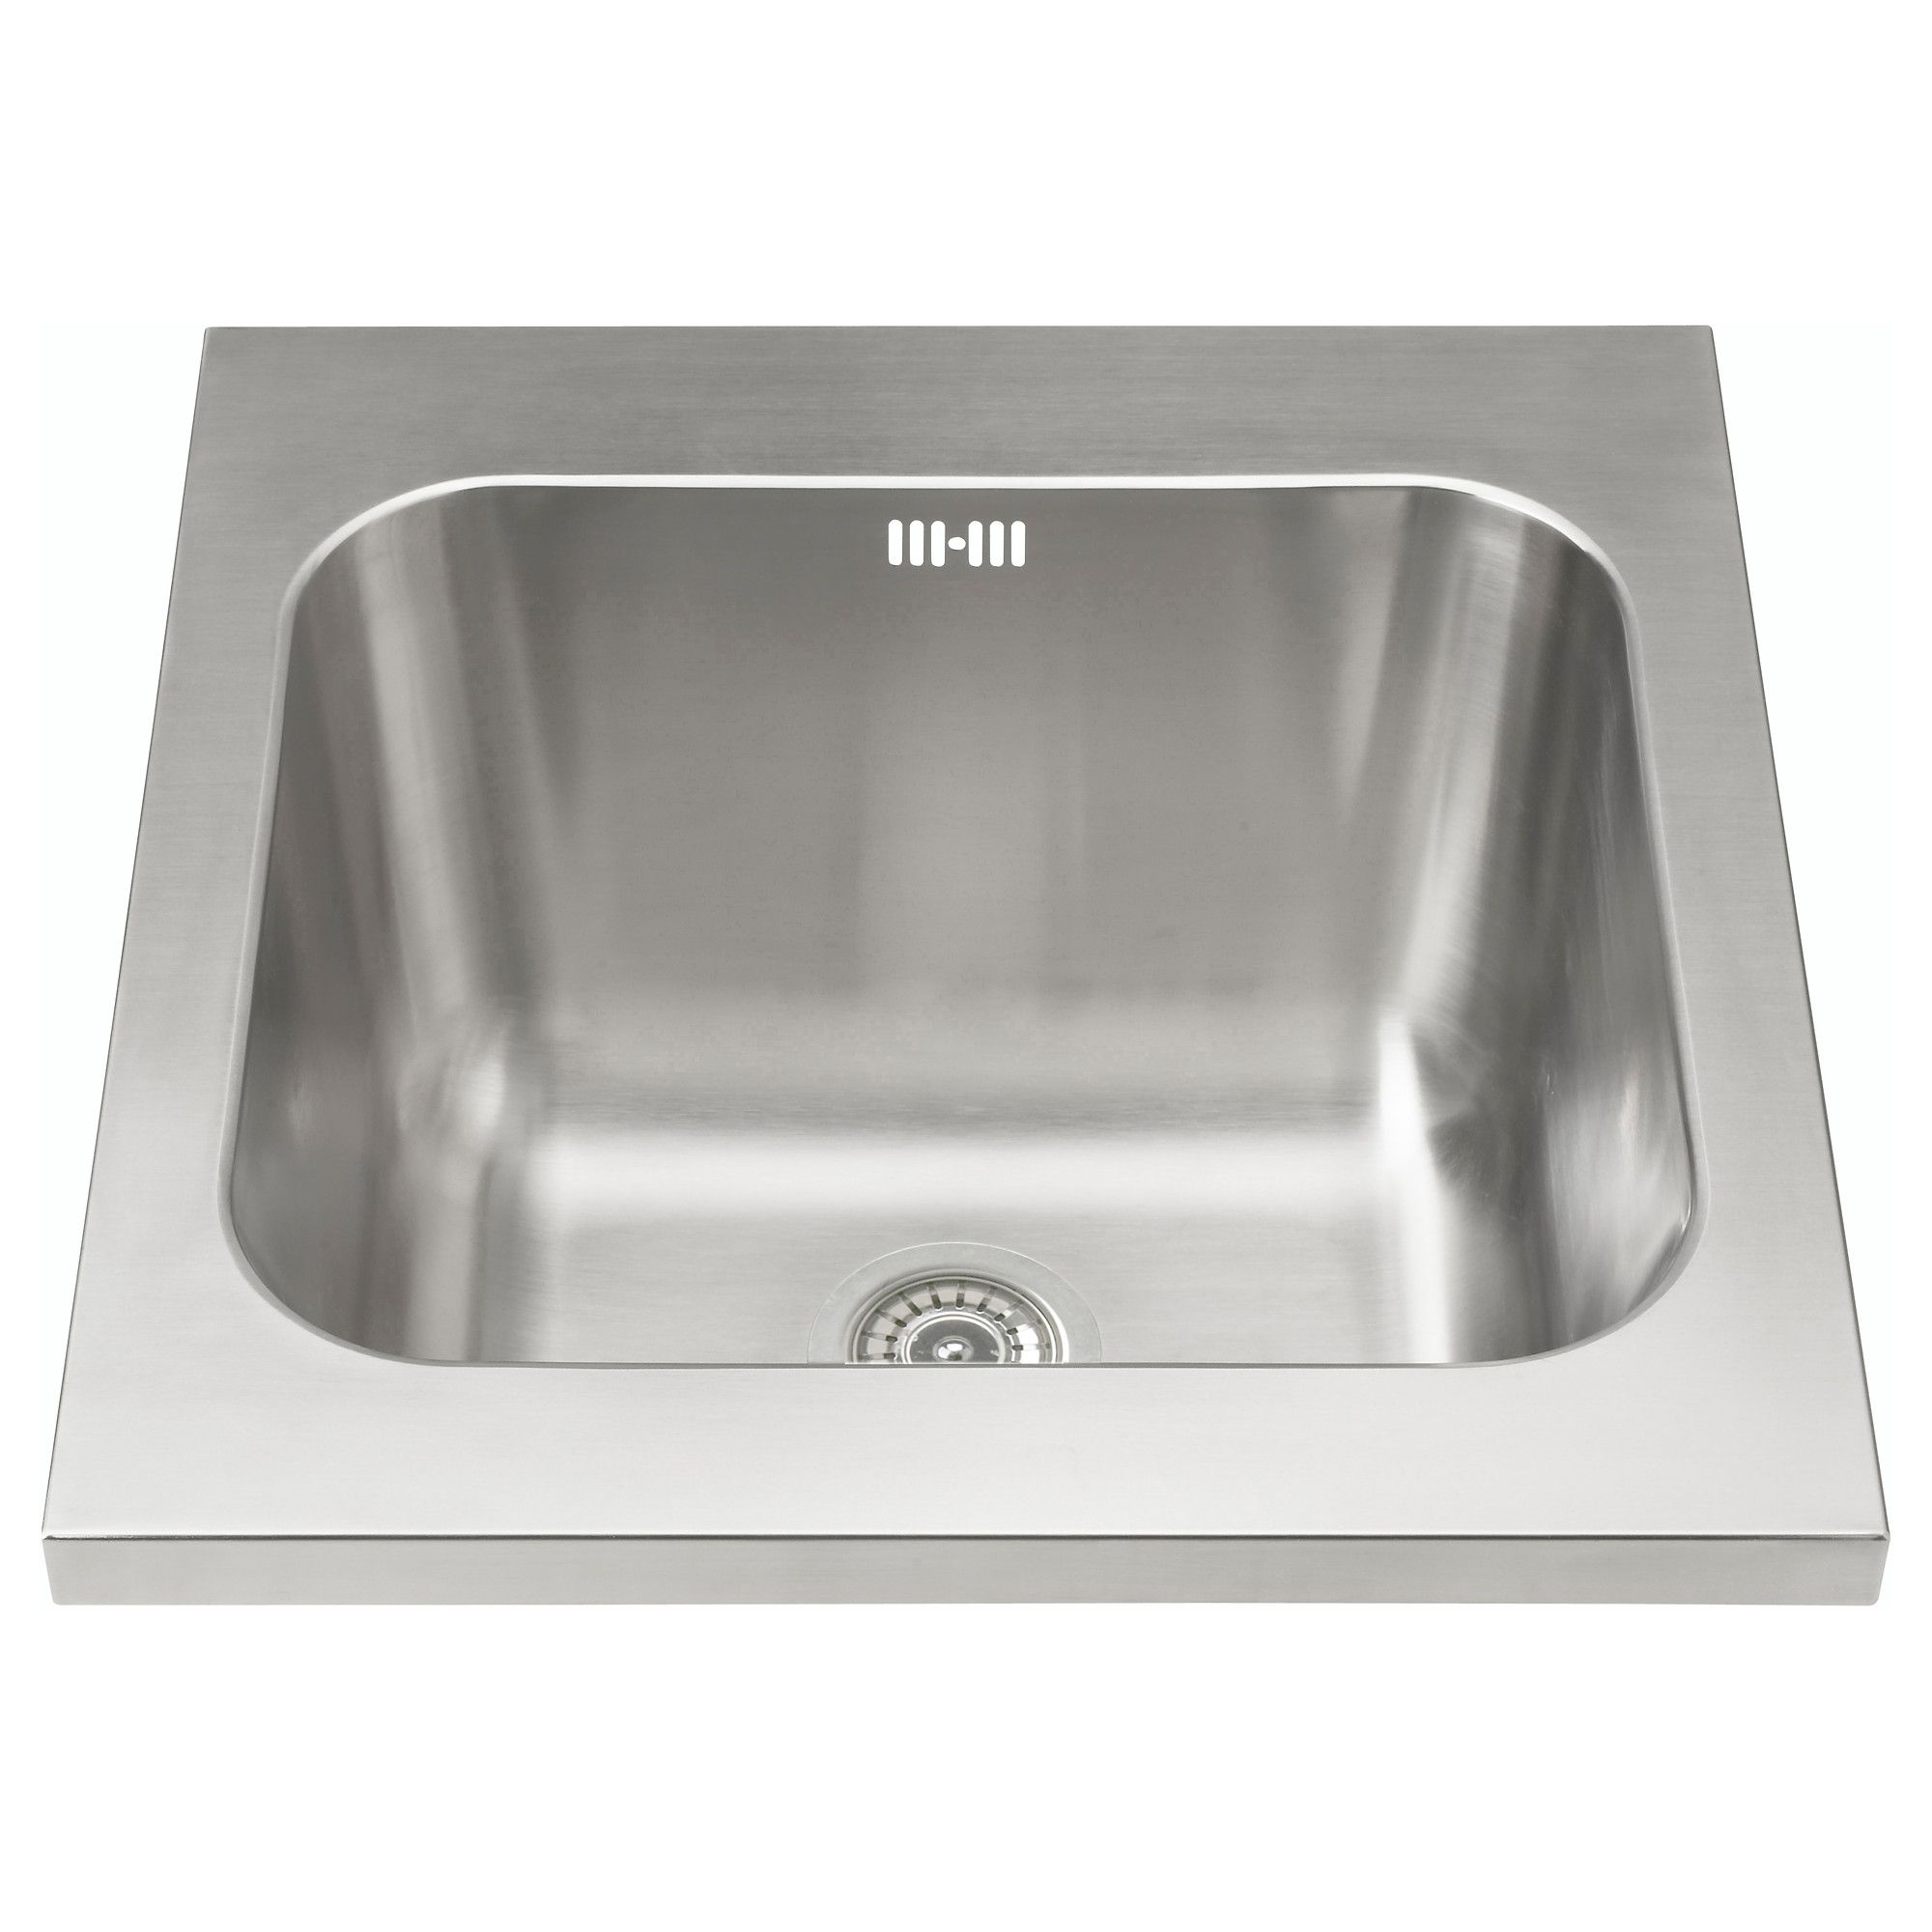 Charming NUMERÄR Sink Bowl, Stainless Steel IKEA FAMILY Has A Washboard At An Angle  In The